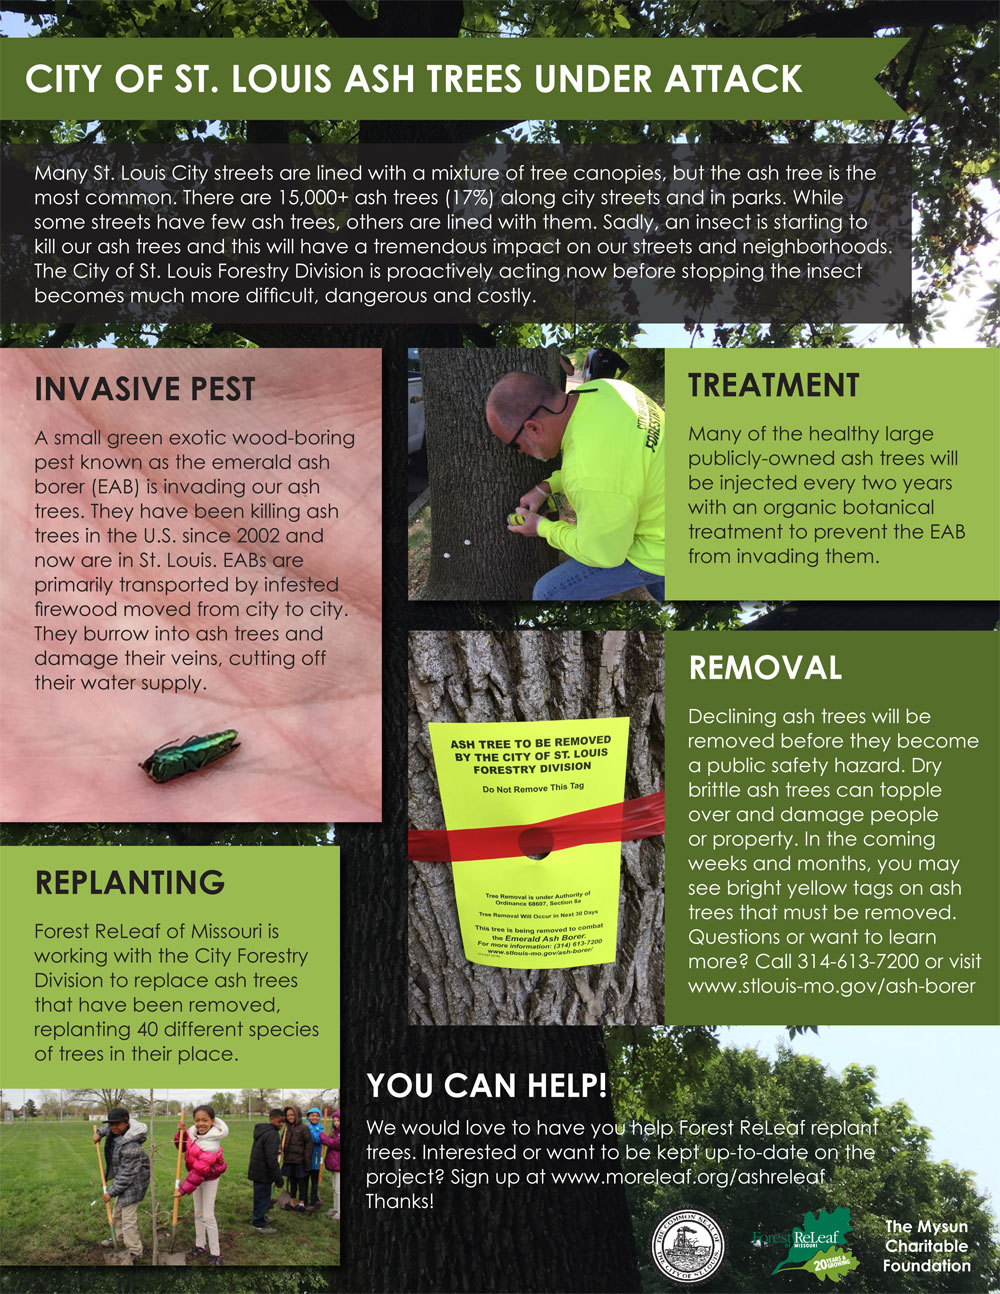 ReLeaf Ash Trees Under Attack Infographic